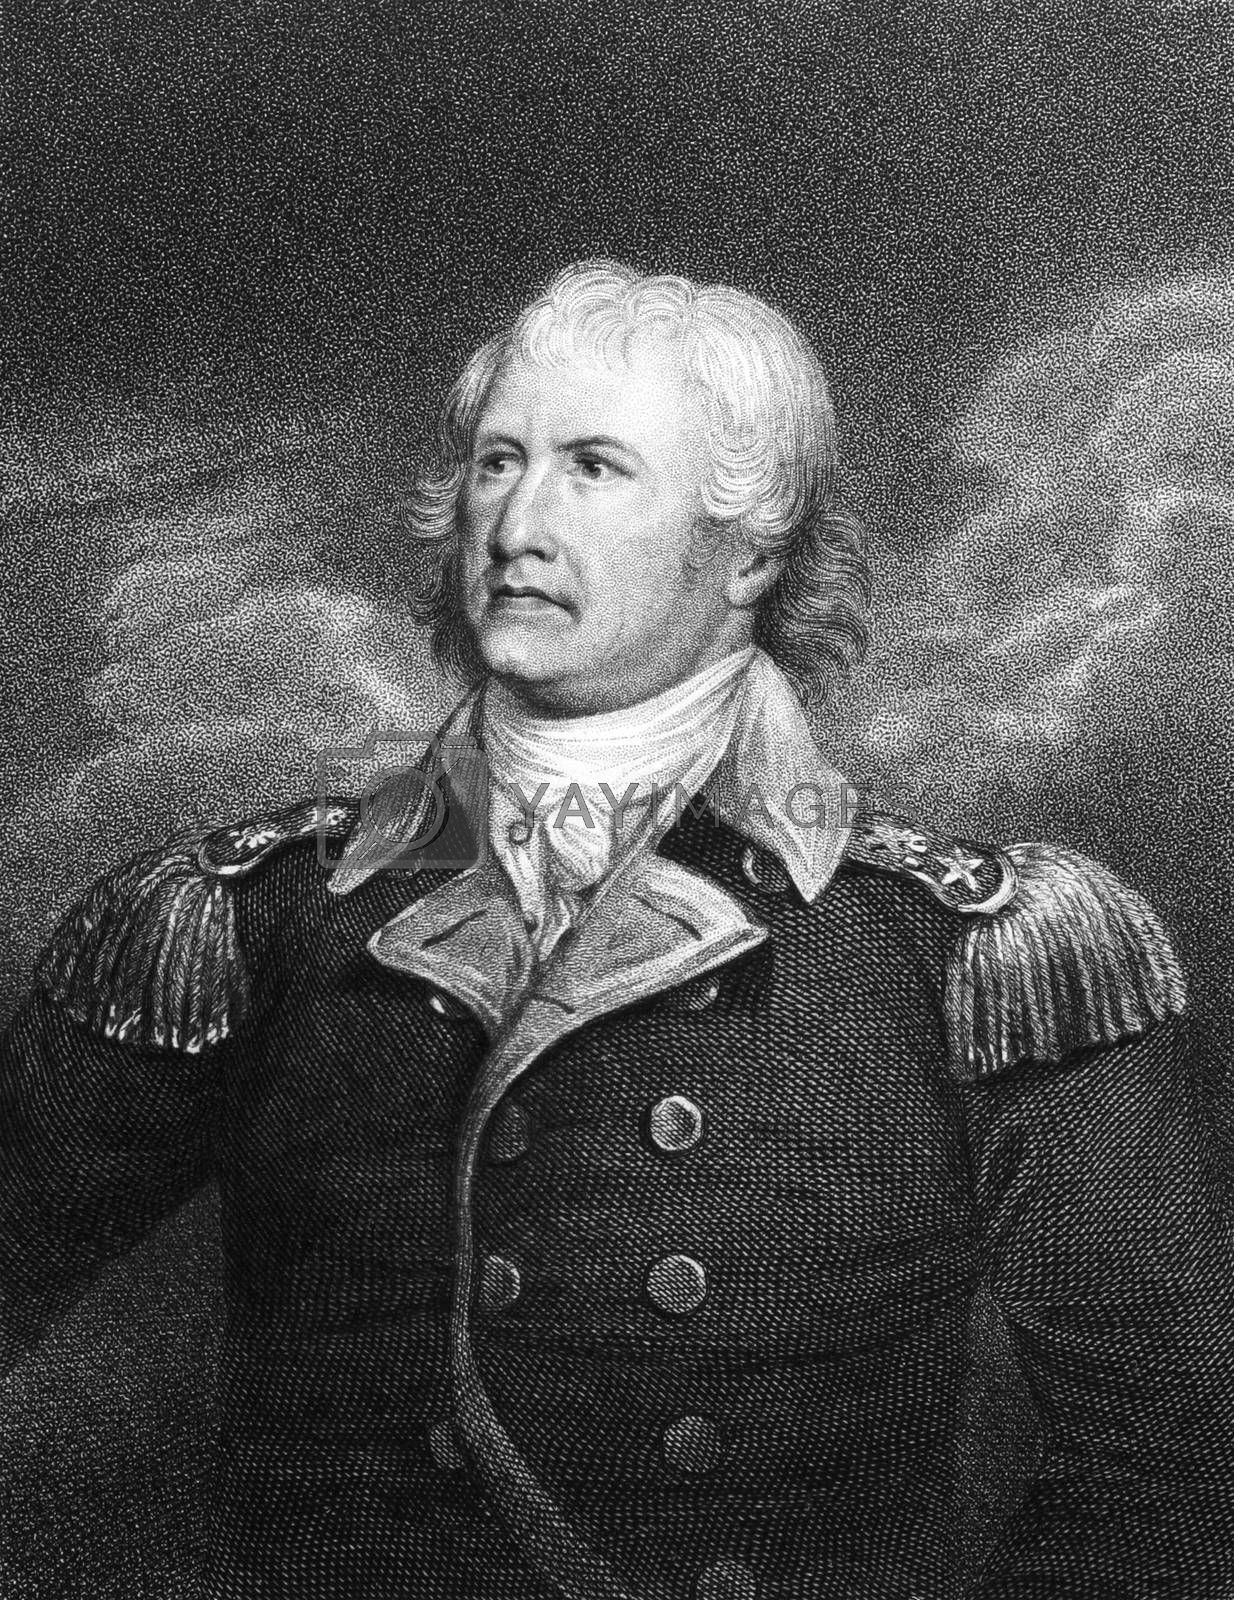 William Moultrie (1730-1805) on engraving from 1834. Planter and politician who became a general from South Carolina in the American Revolutionary War. Engraved by E. Scriven and published in ''National Portrait Gallery of Distinguished Americans'',USA,1834.